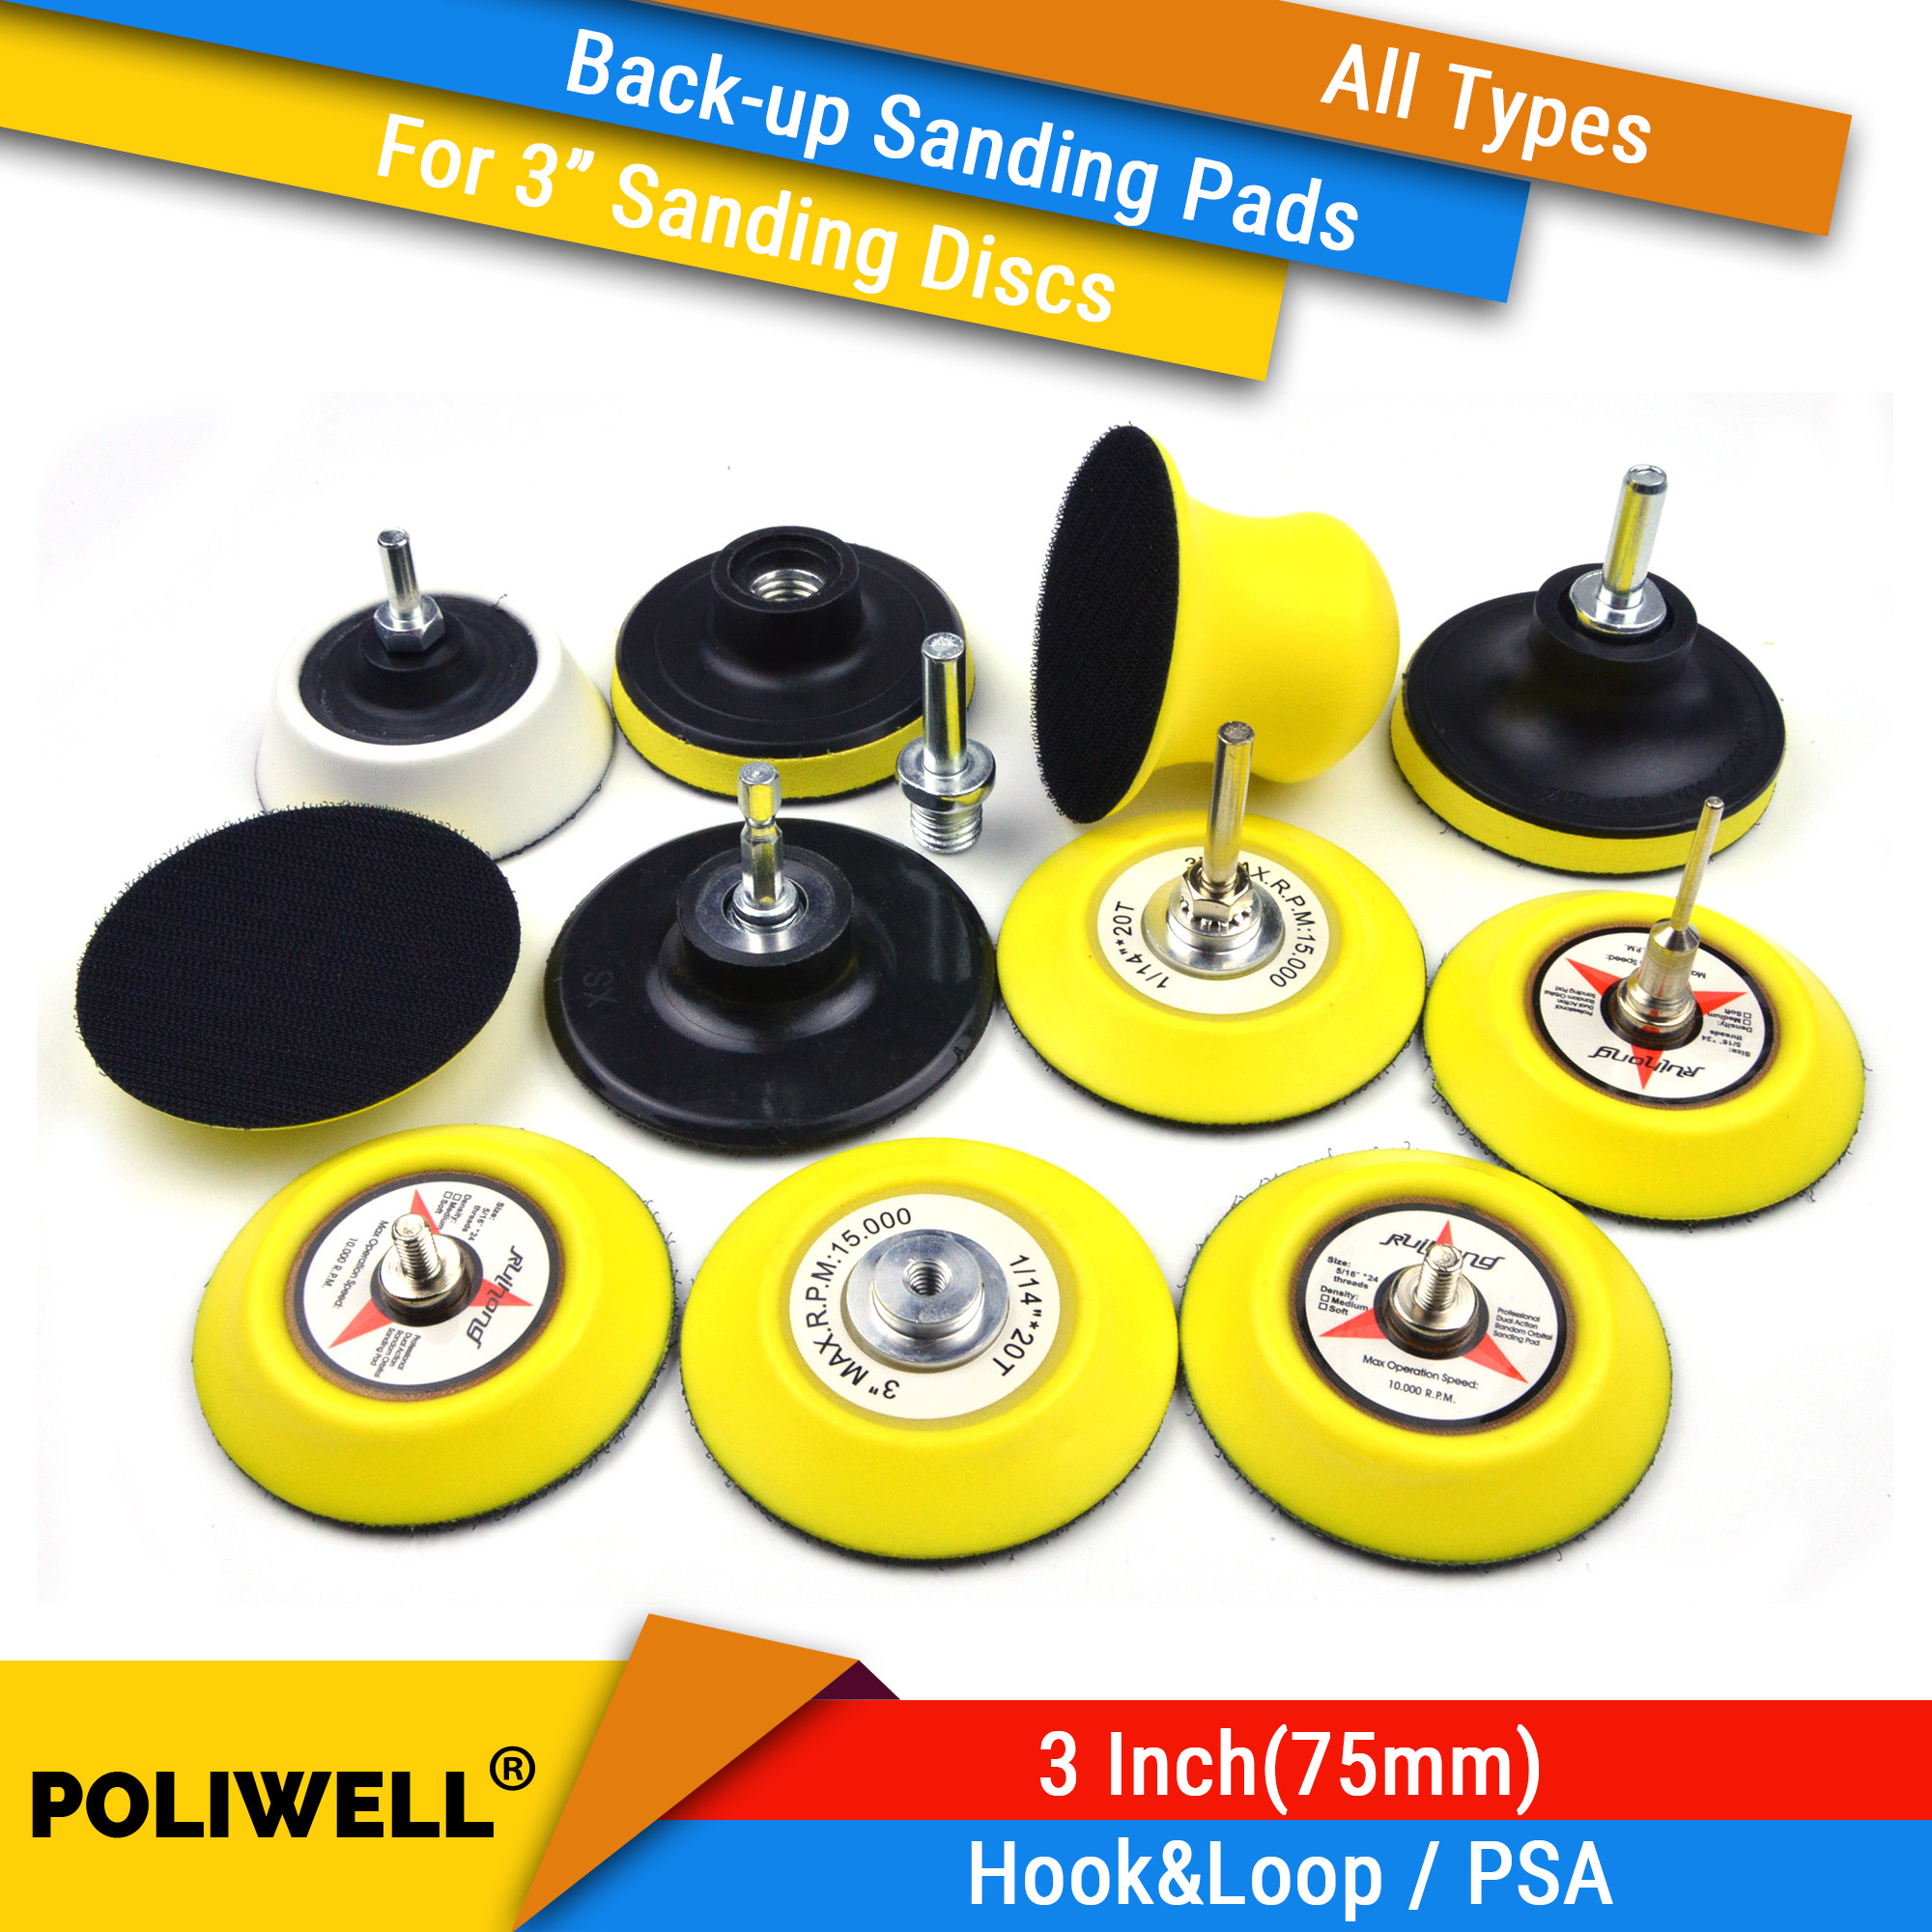 3 Inch All Types Back-up Sanding Pads For Abrasive Sandpaper Sanding Discs For Woodworking Polishing Tool Accessories